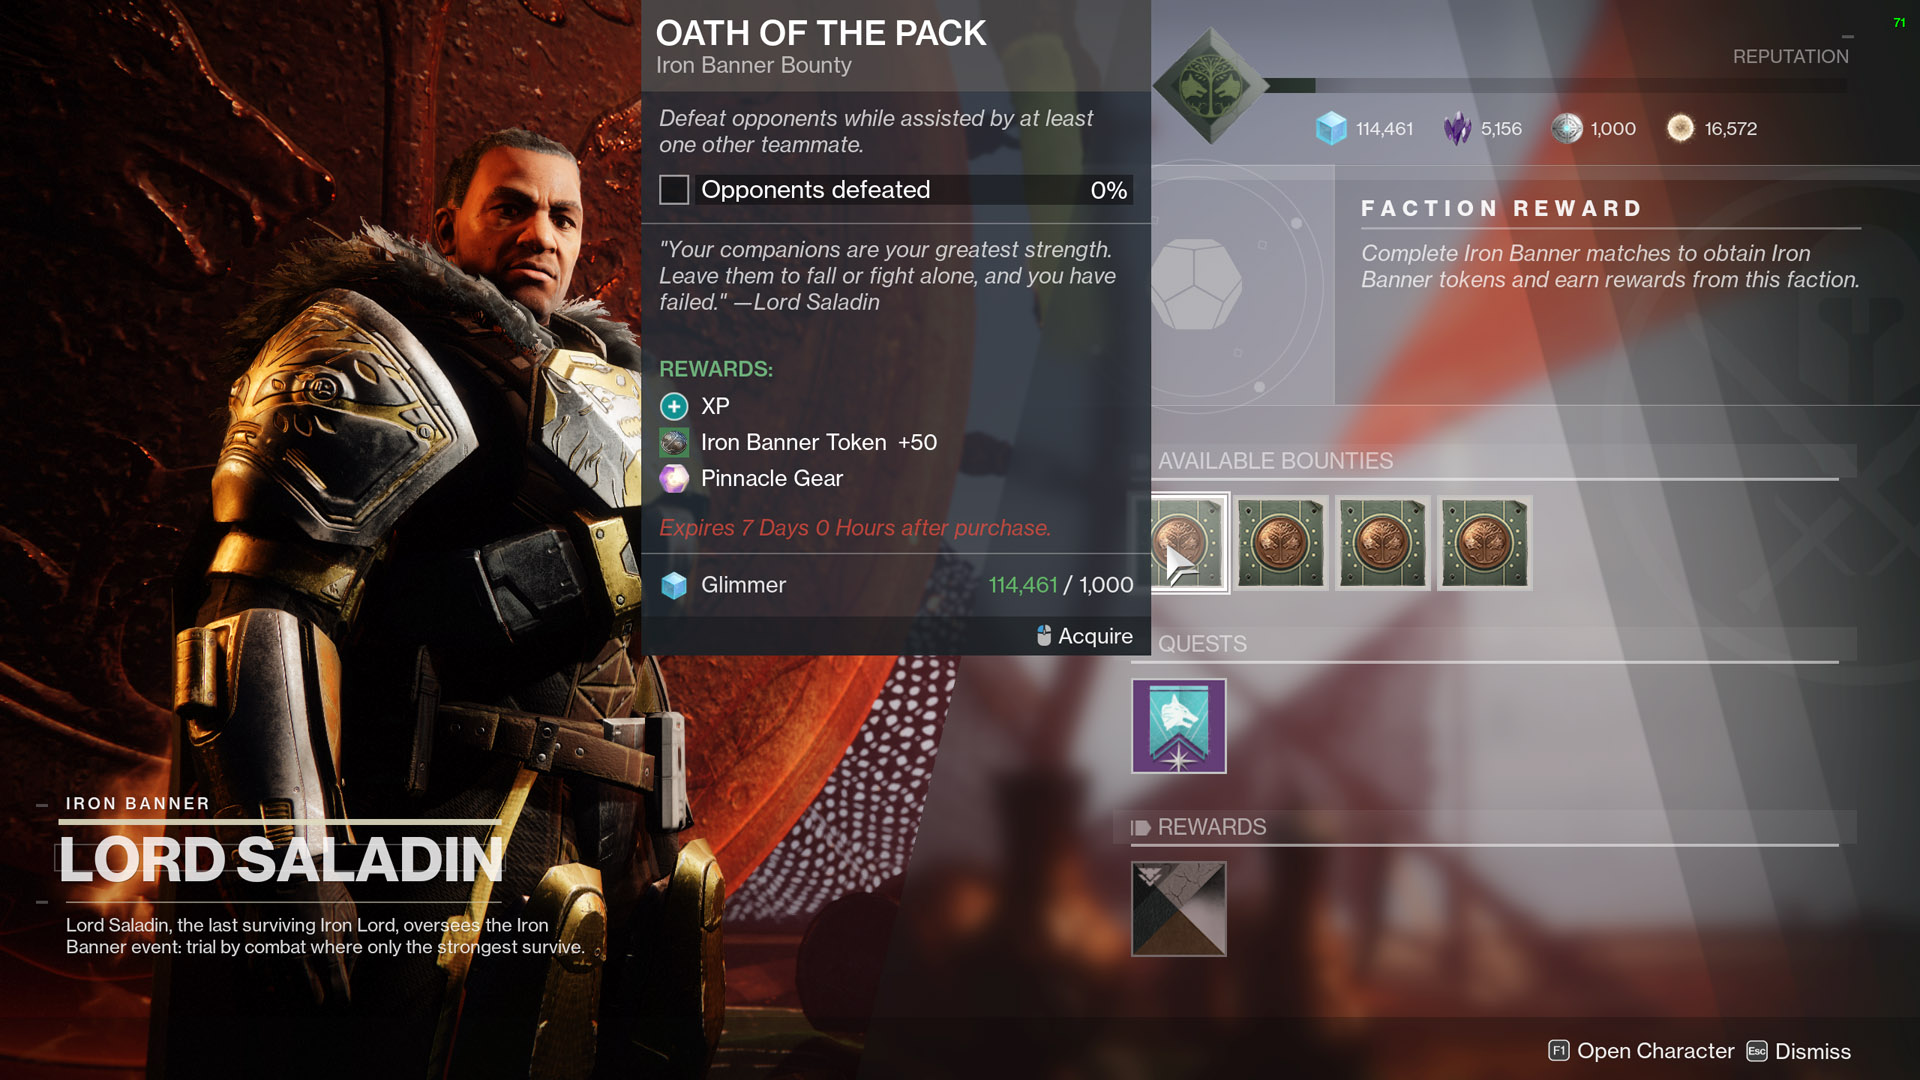 destiny 2 oath of the pack